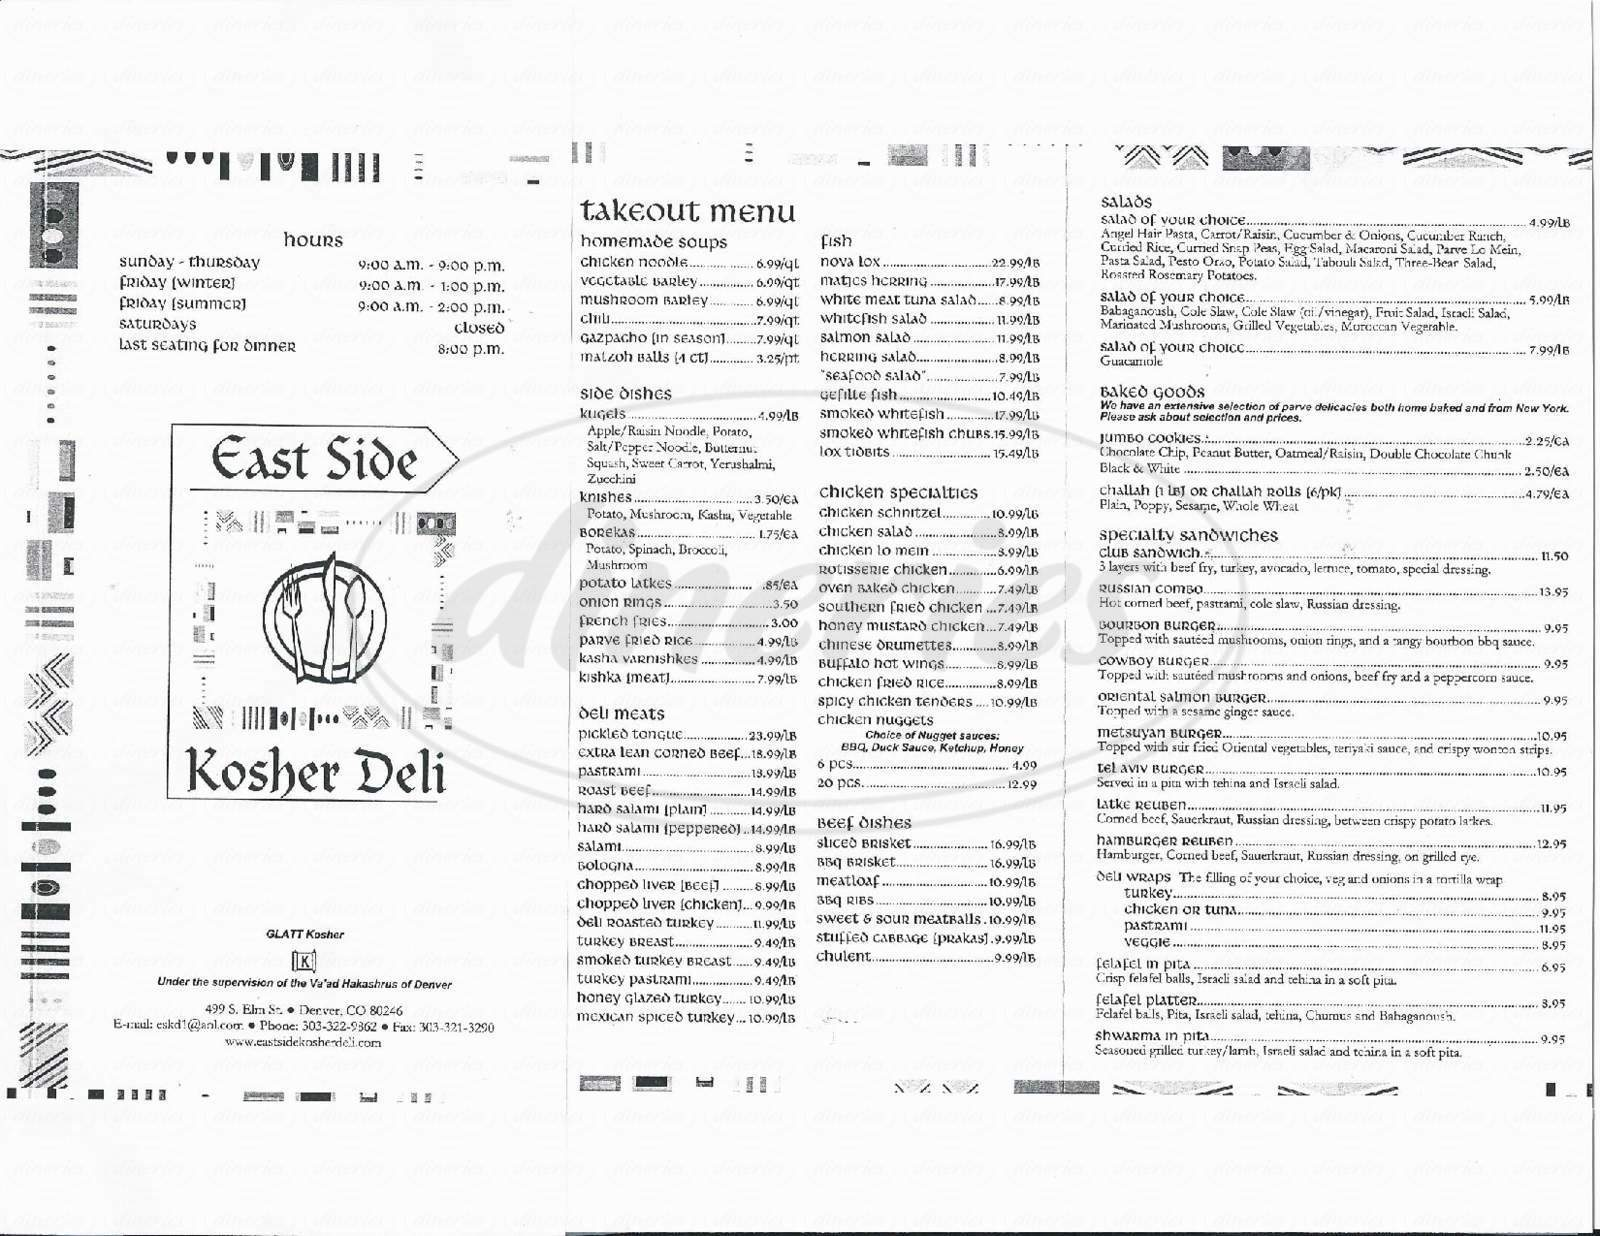 menu for East Side Kosher Deli